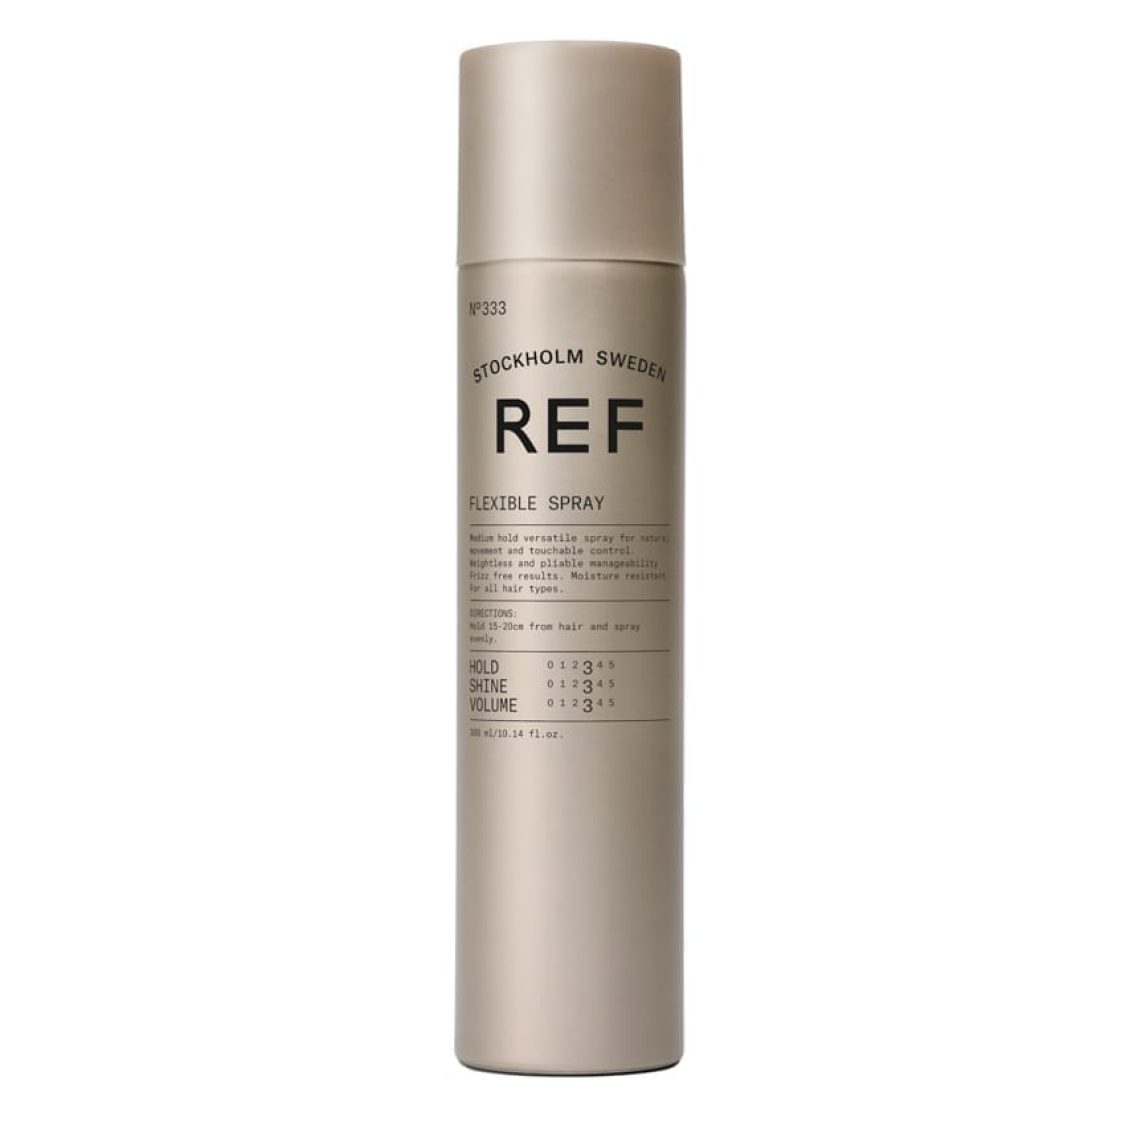 REF - Flexible Spray 300ml